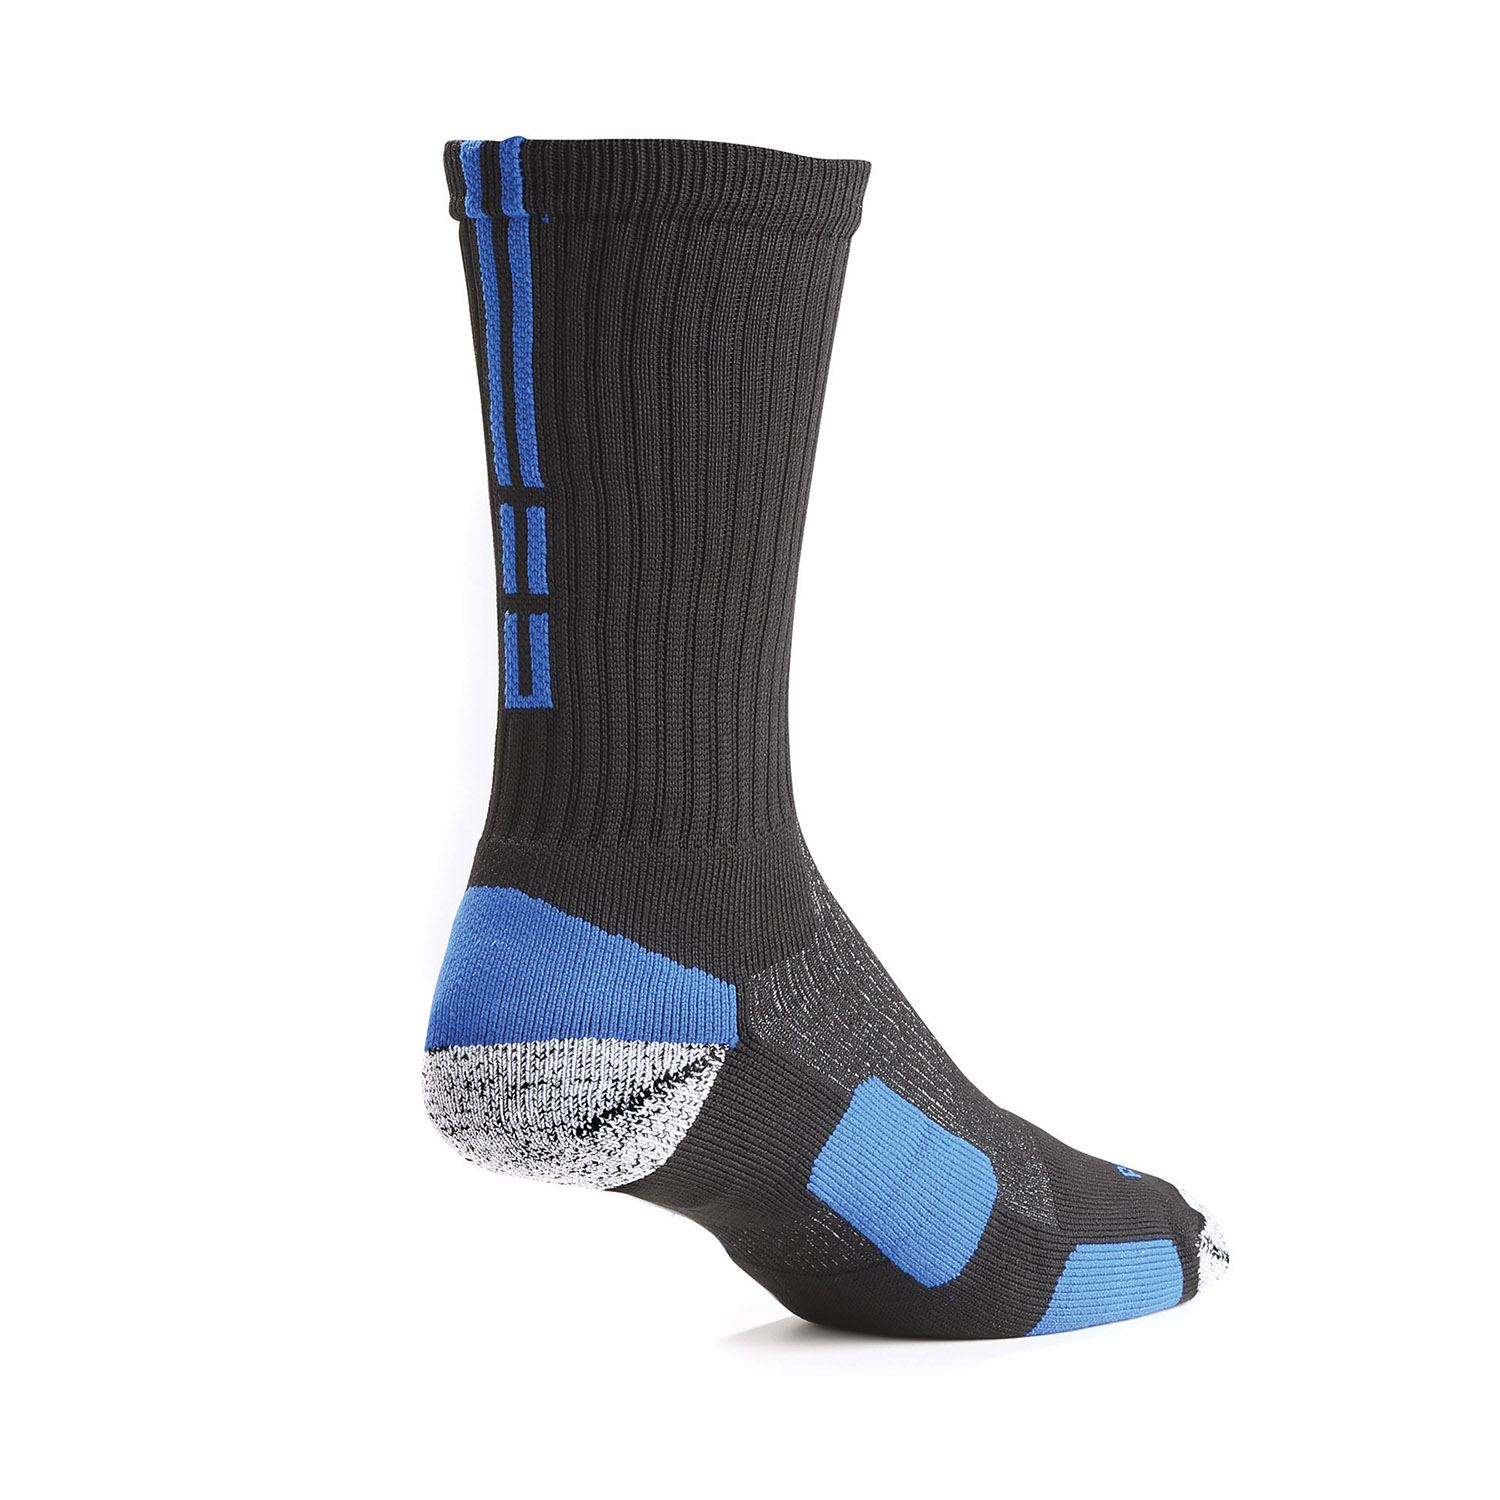 Pro Feet Hero Series Never Forget Crew Socks